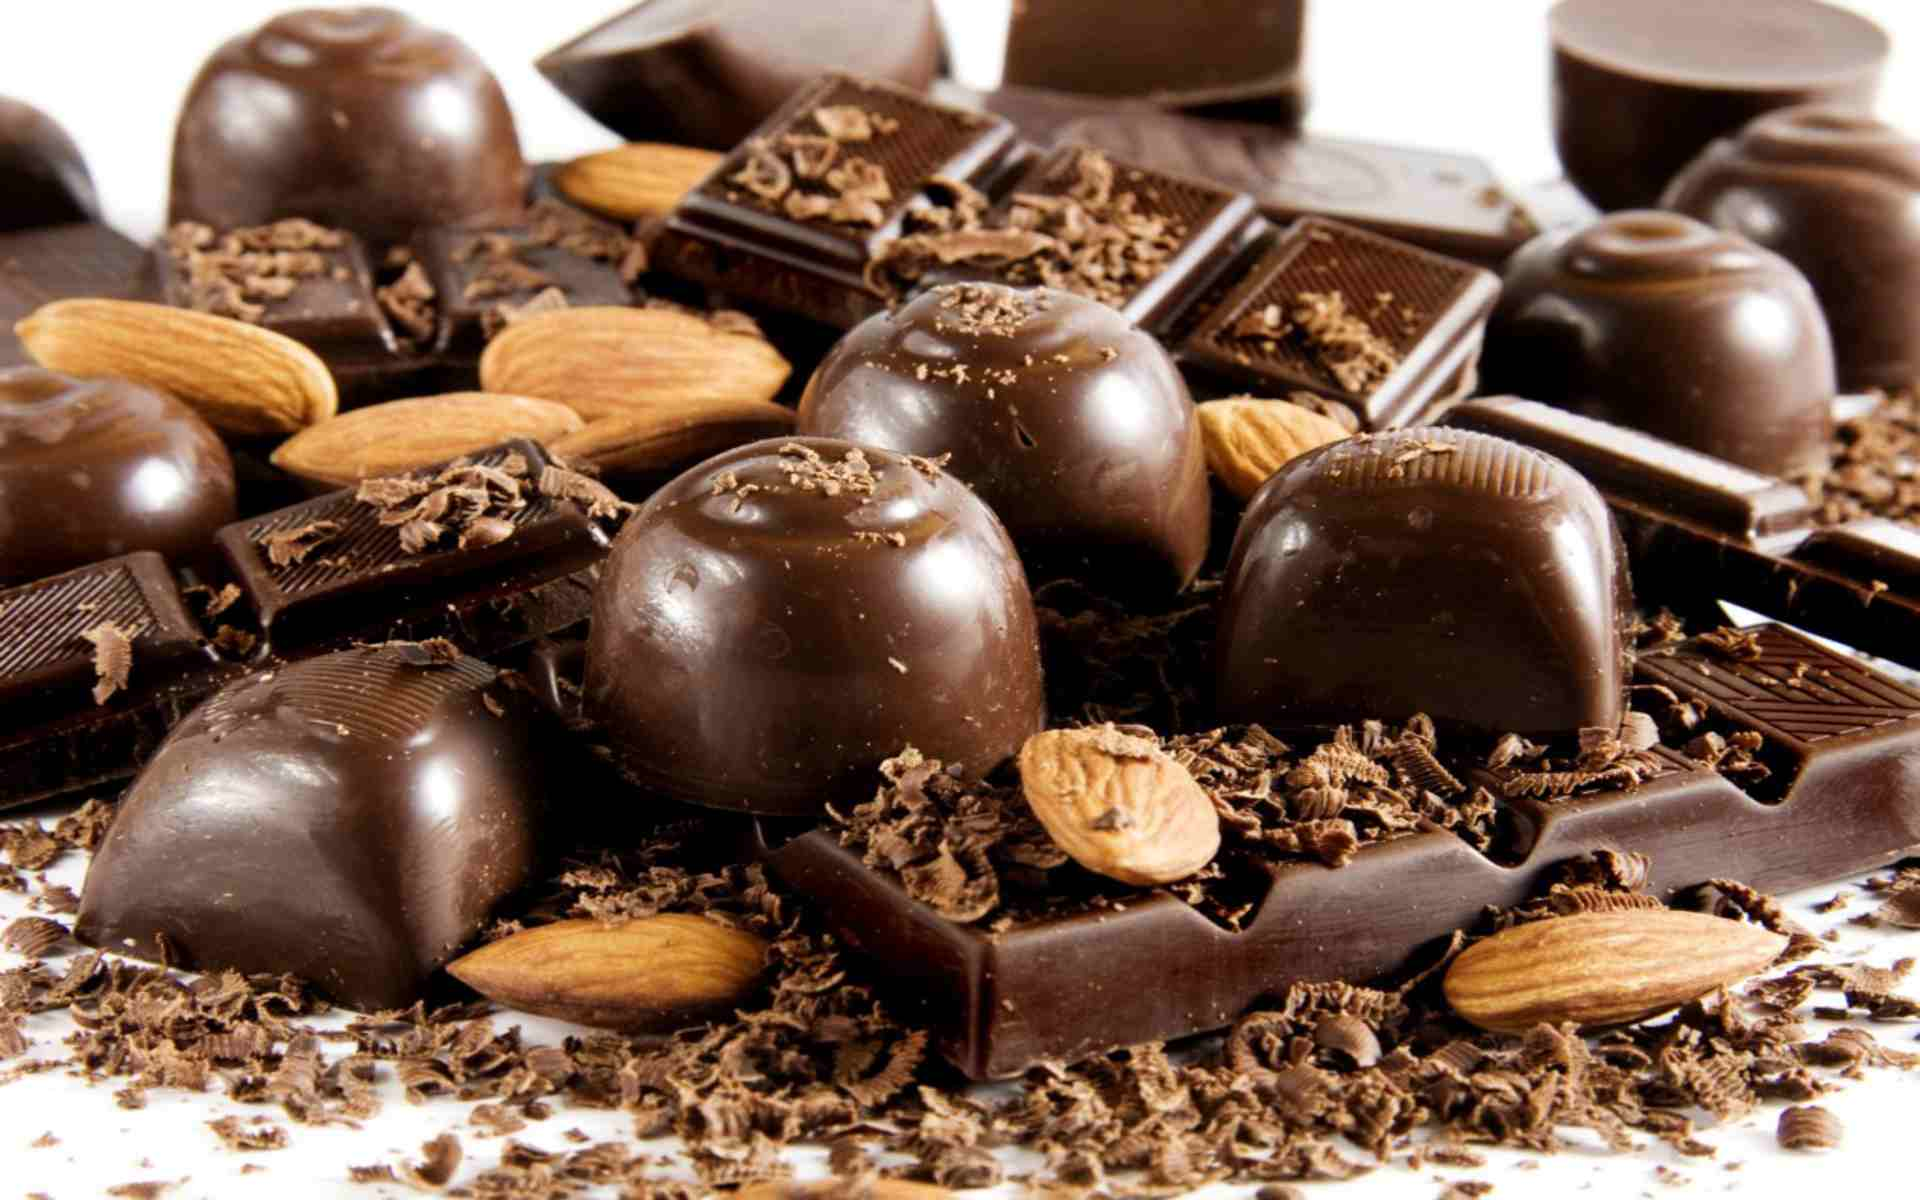 DOWNLOAD: chocolate sweets chips candy free picture 2560 x 1600